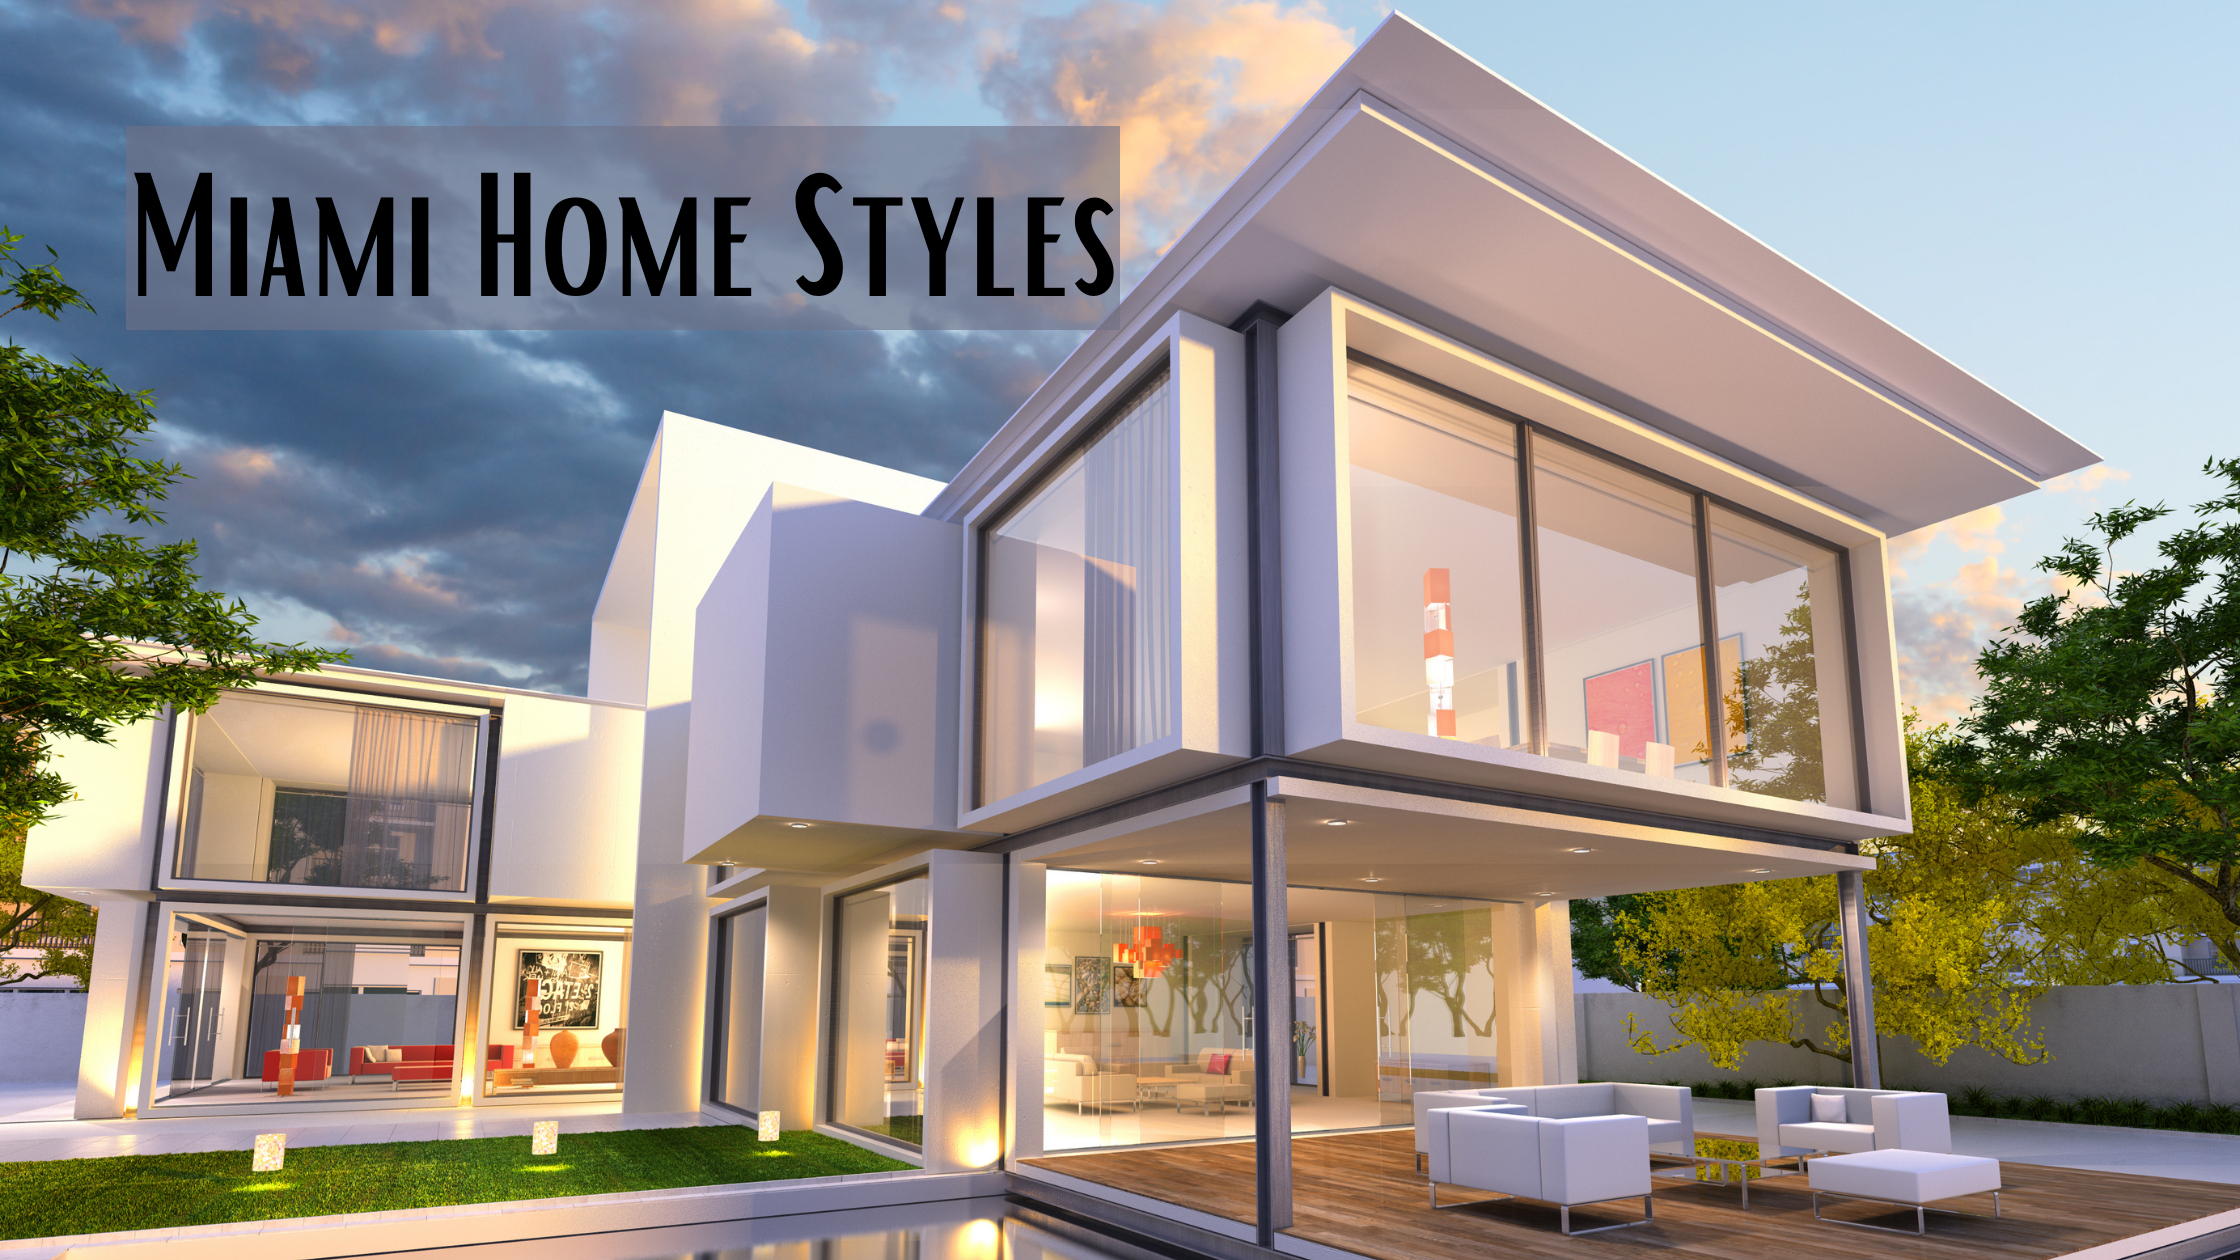 What Housing Styles are the Most Popular in Miami?